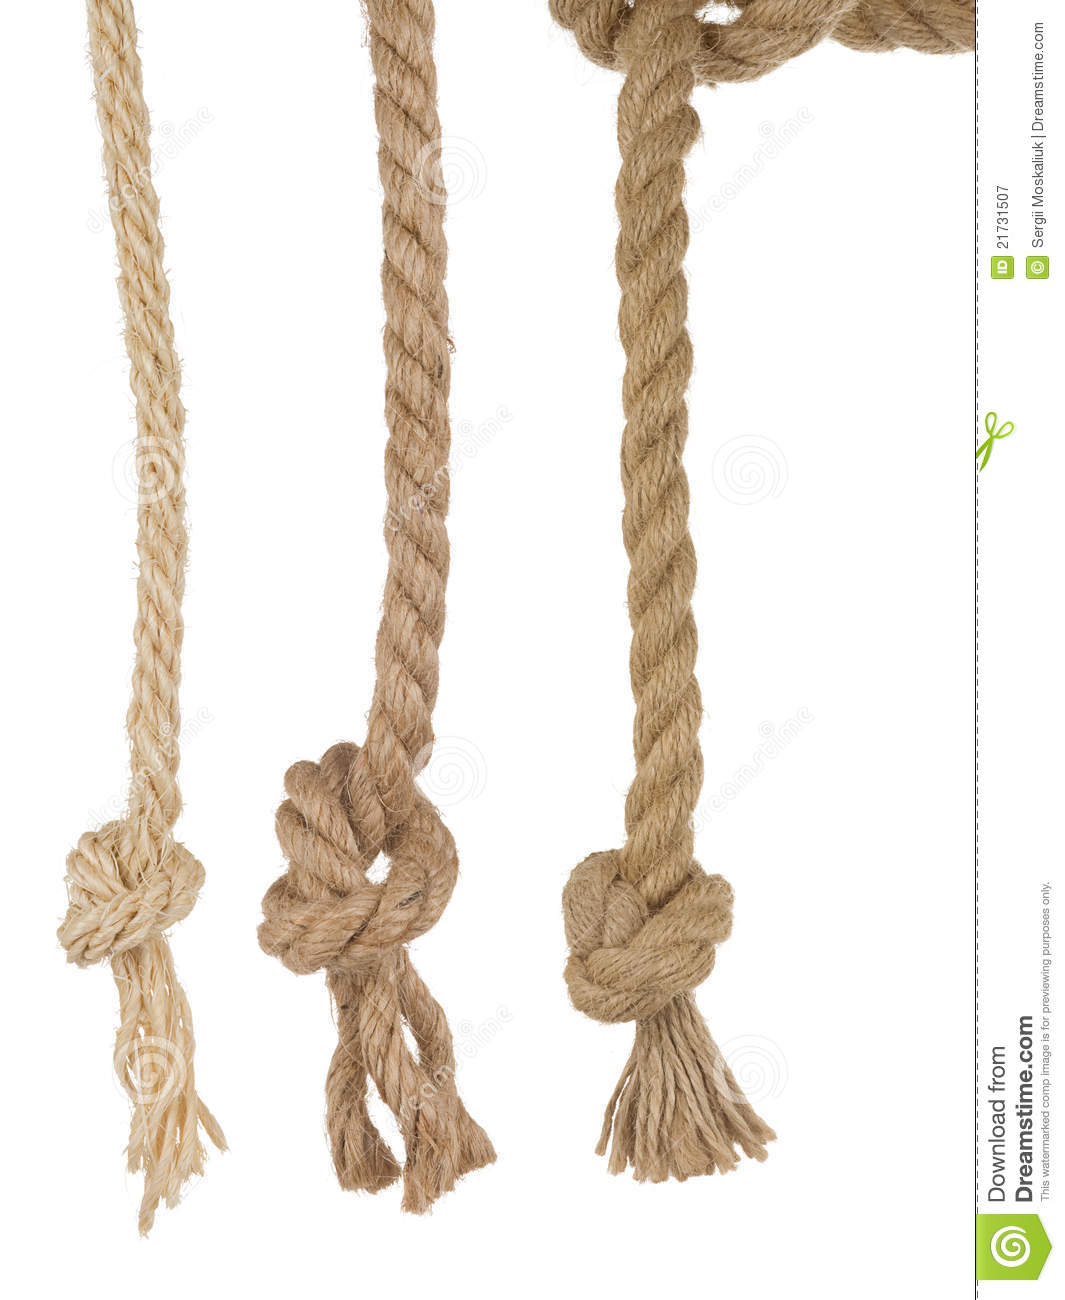 Royalty Free Stock Photography Ship Ropes Knot White Image21731507 in addition Royalty Free Stock Photography Twill Weave Image12332387 additionally Woven Straw Jute Textures in addition Royalty Free Stock Photography Texture Soft Shaggy Fabric Used Cleaning Surfaces Image31797497 also Needle And Thread 2 287350669. on weave vector